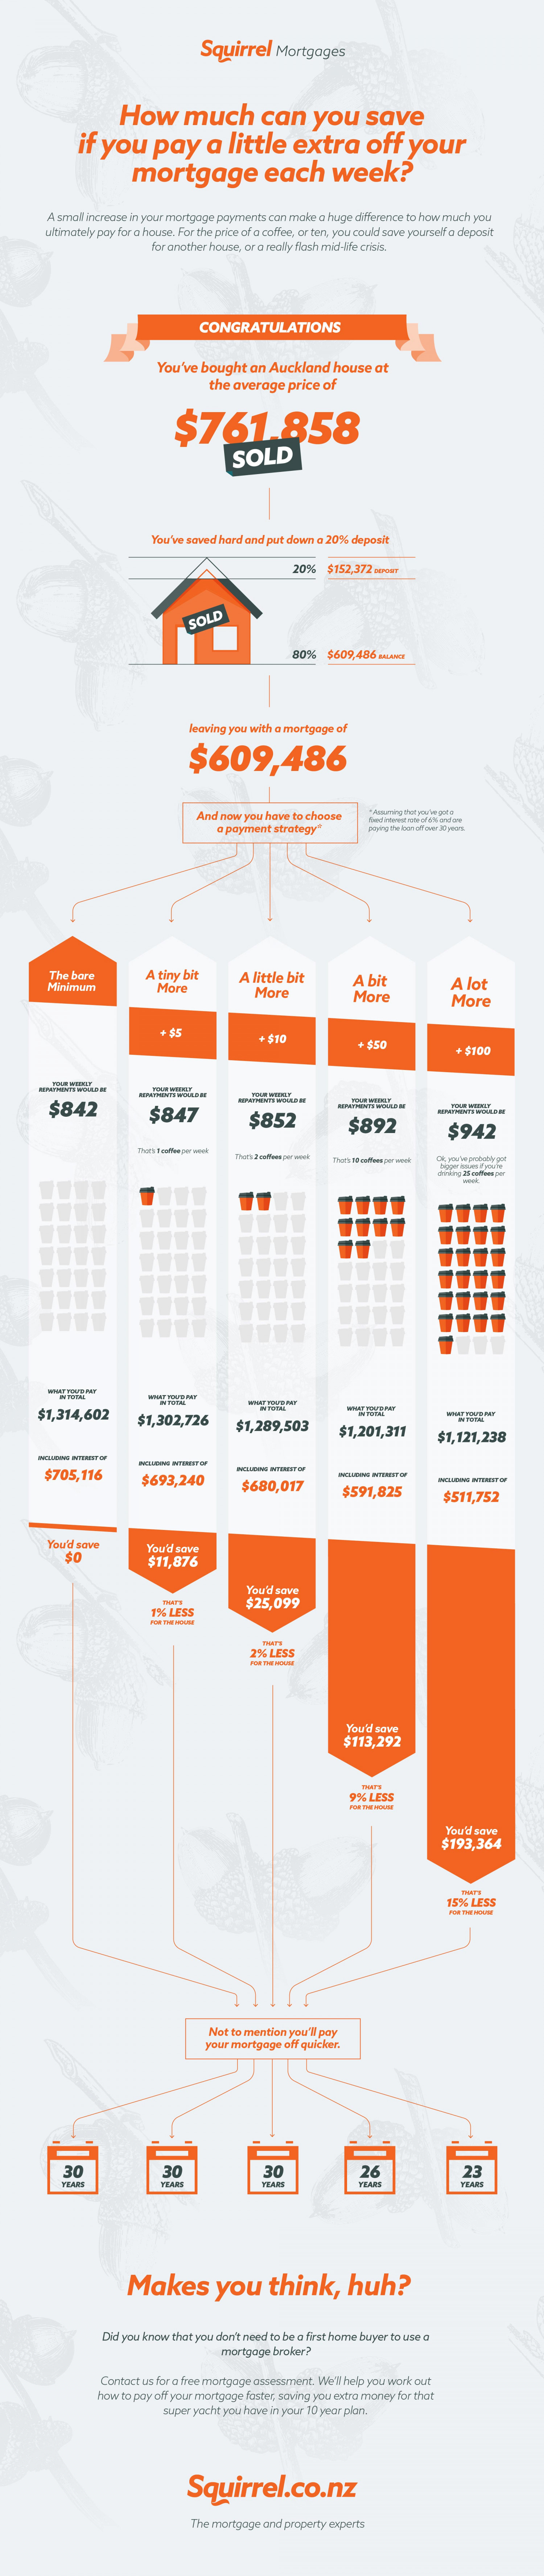 How Much Could You Save? Infographic